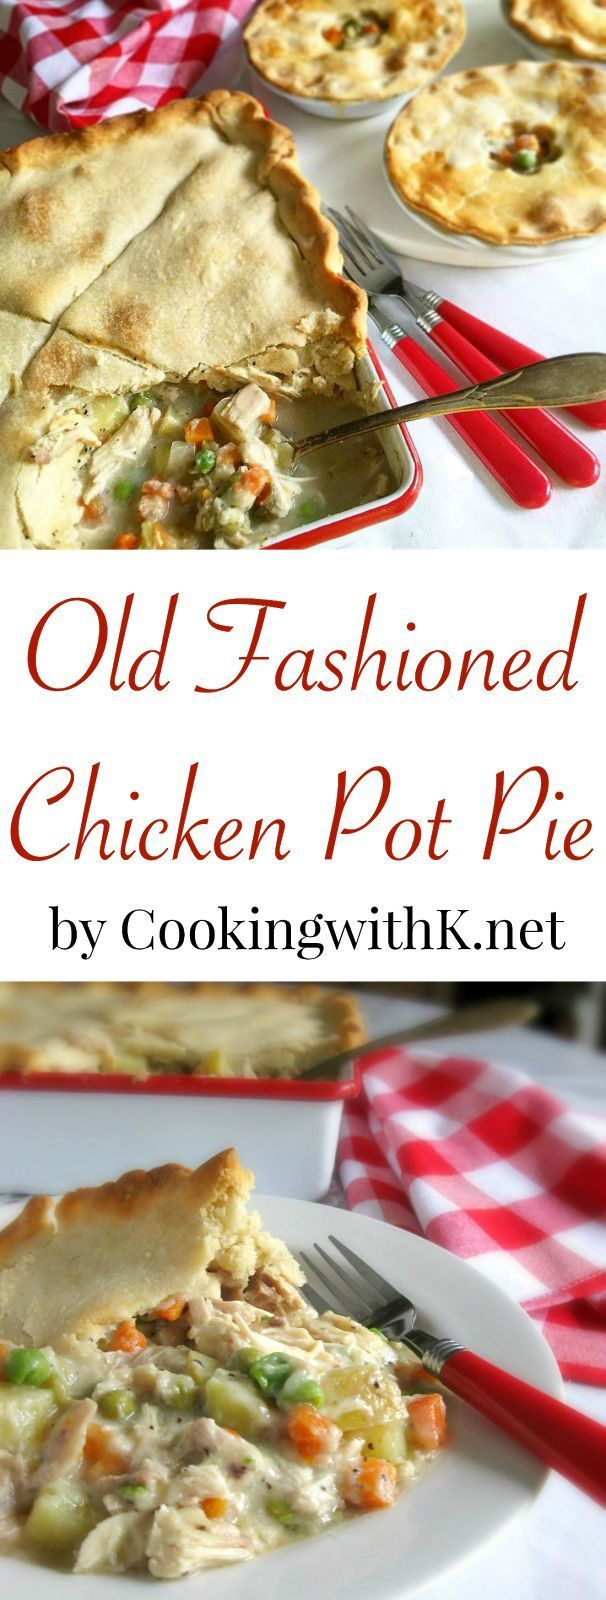 Cooking with K - Southern Kitchen Happenings: Old Fashioned Chicken Pot Pie